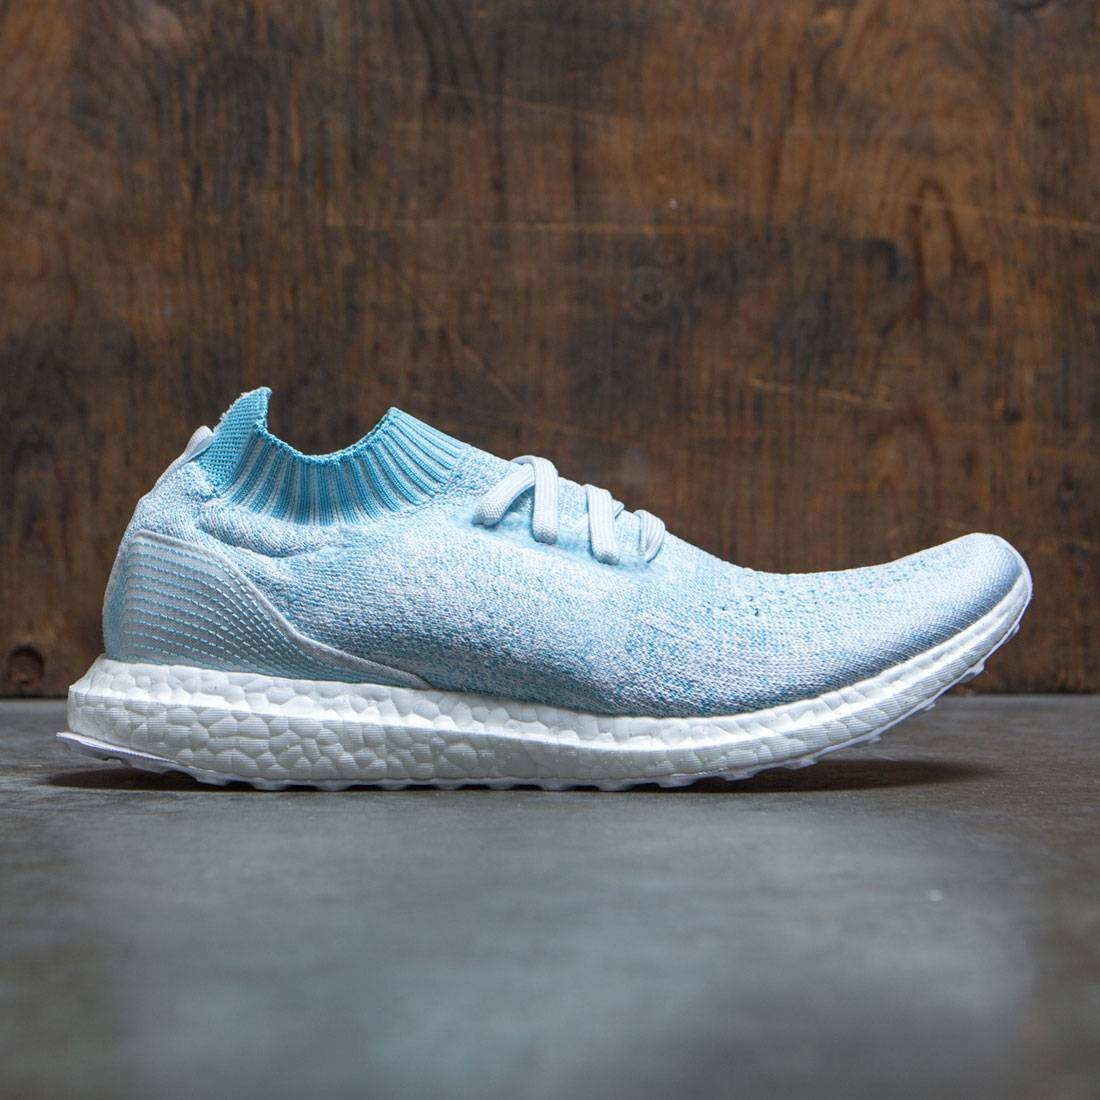 98c33c60e1a87 Adidas Men UltraBOOST Uncaged Parley blue icey blue footwear white